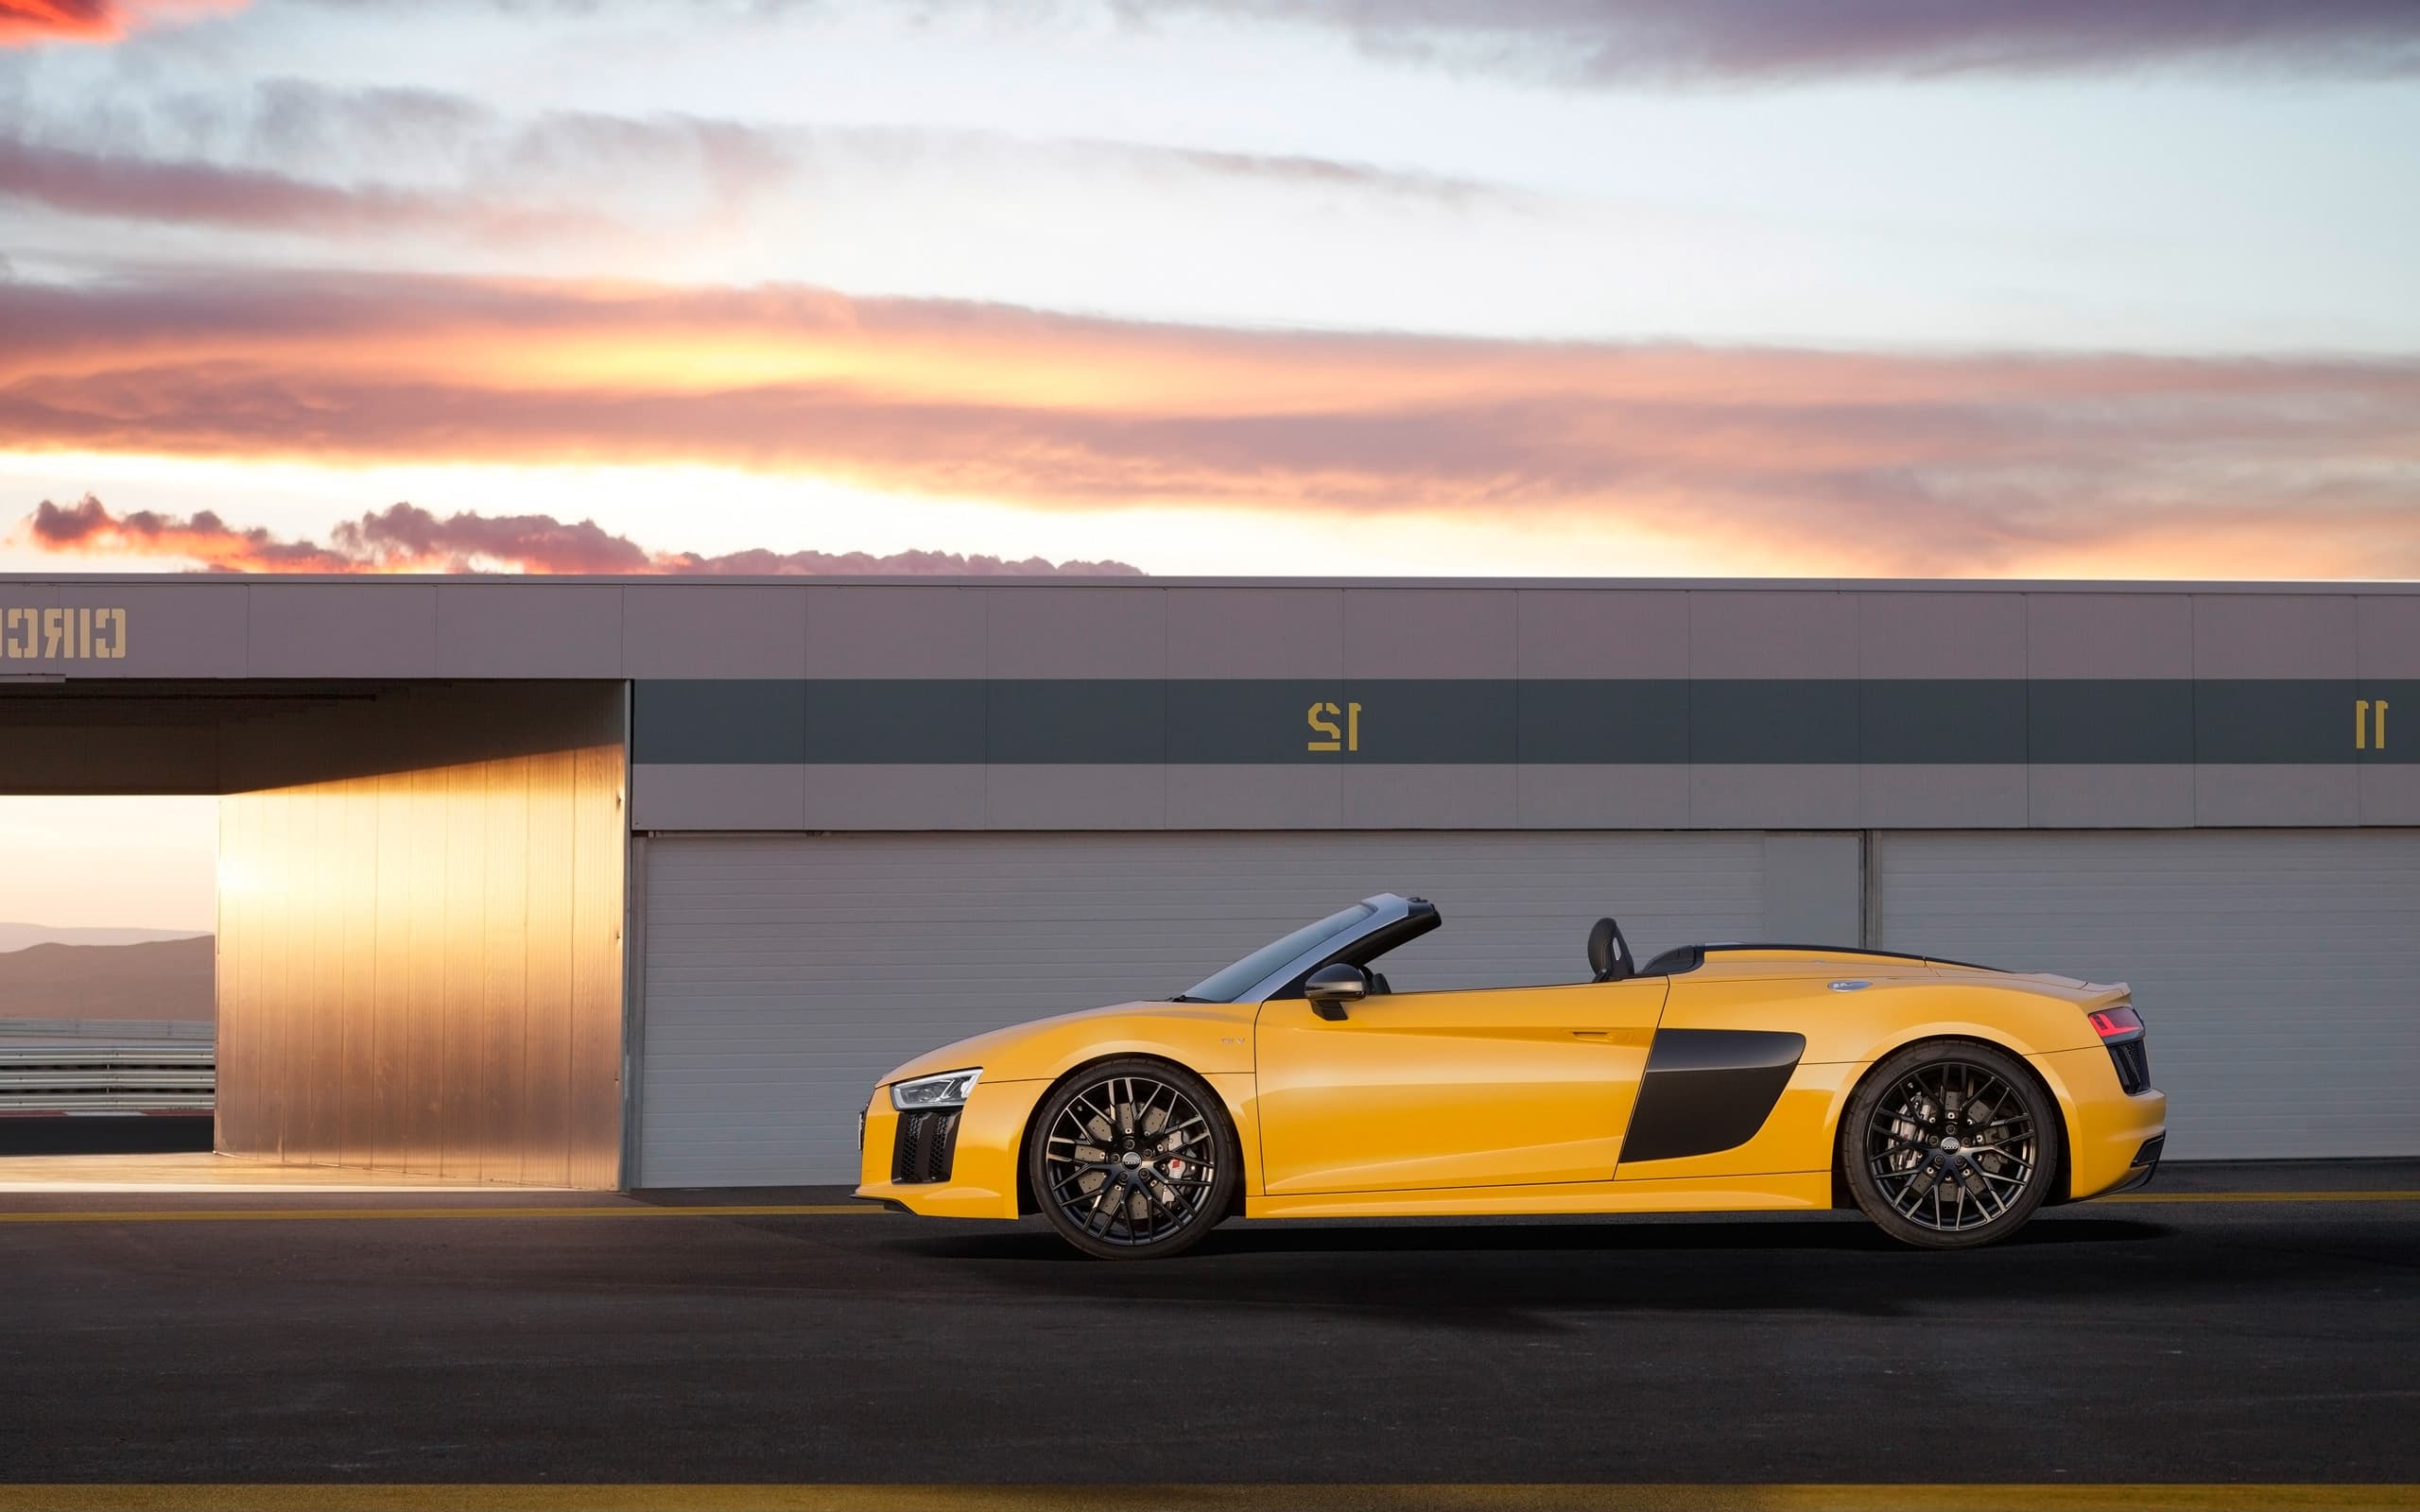 2017 Audi R8 Spyder V10 wallpapers High Quality Resolution ...